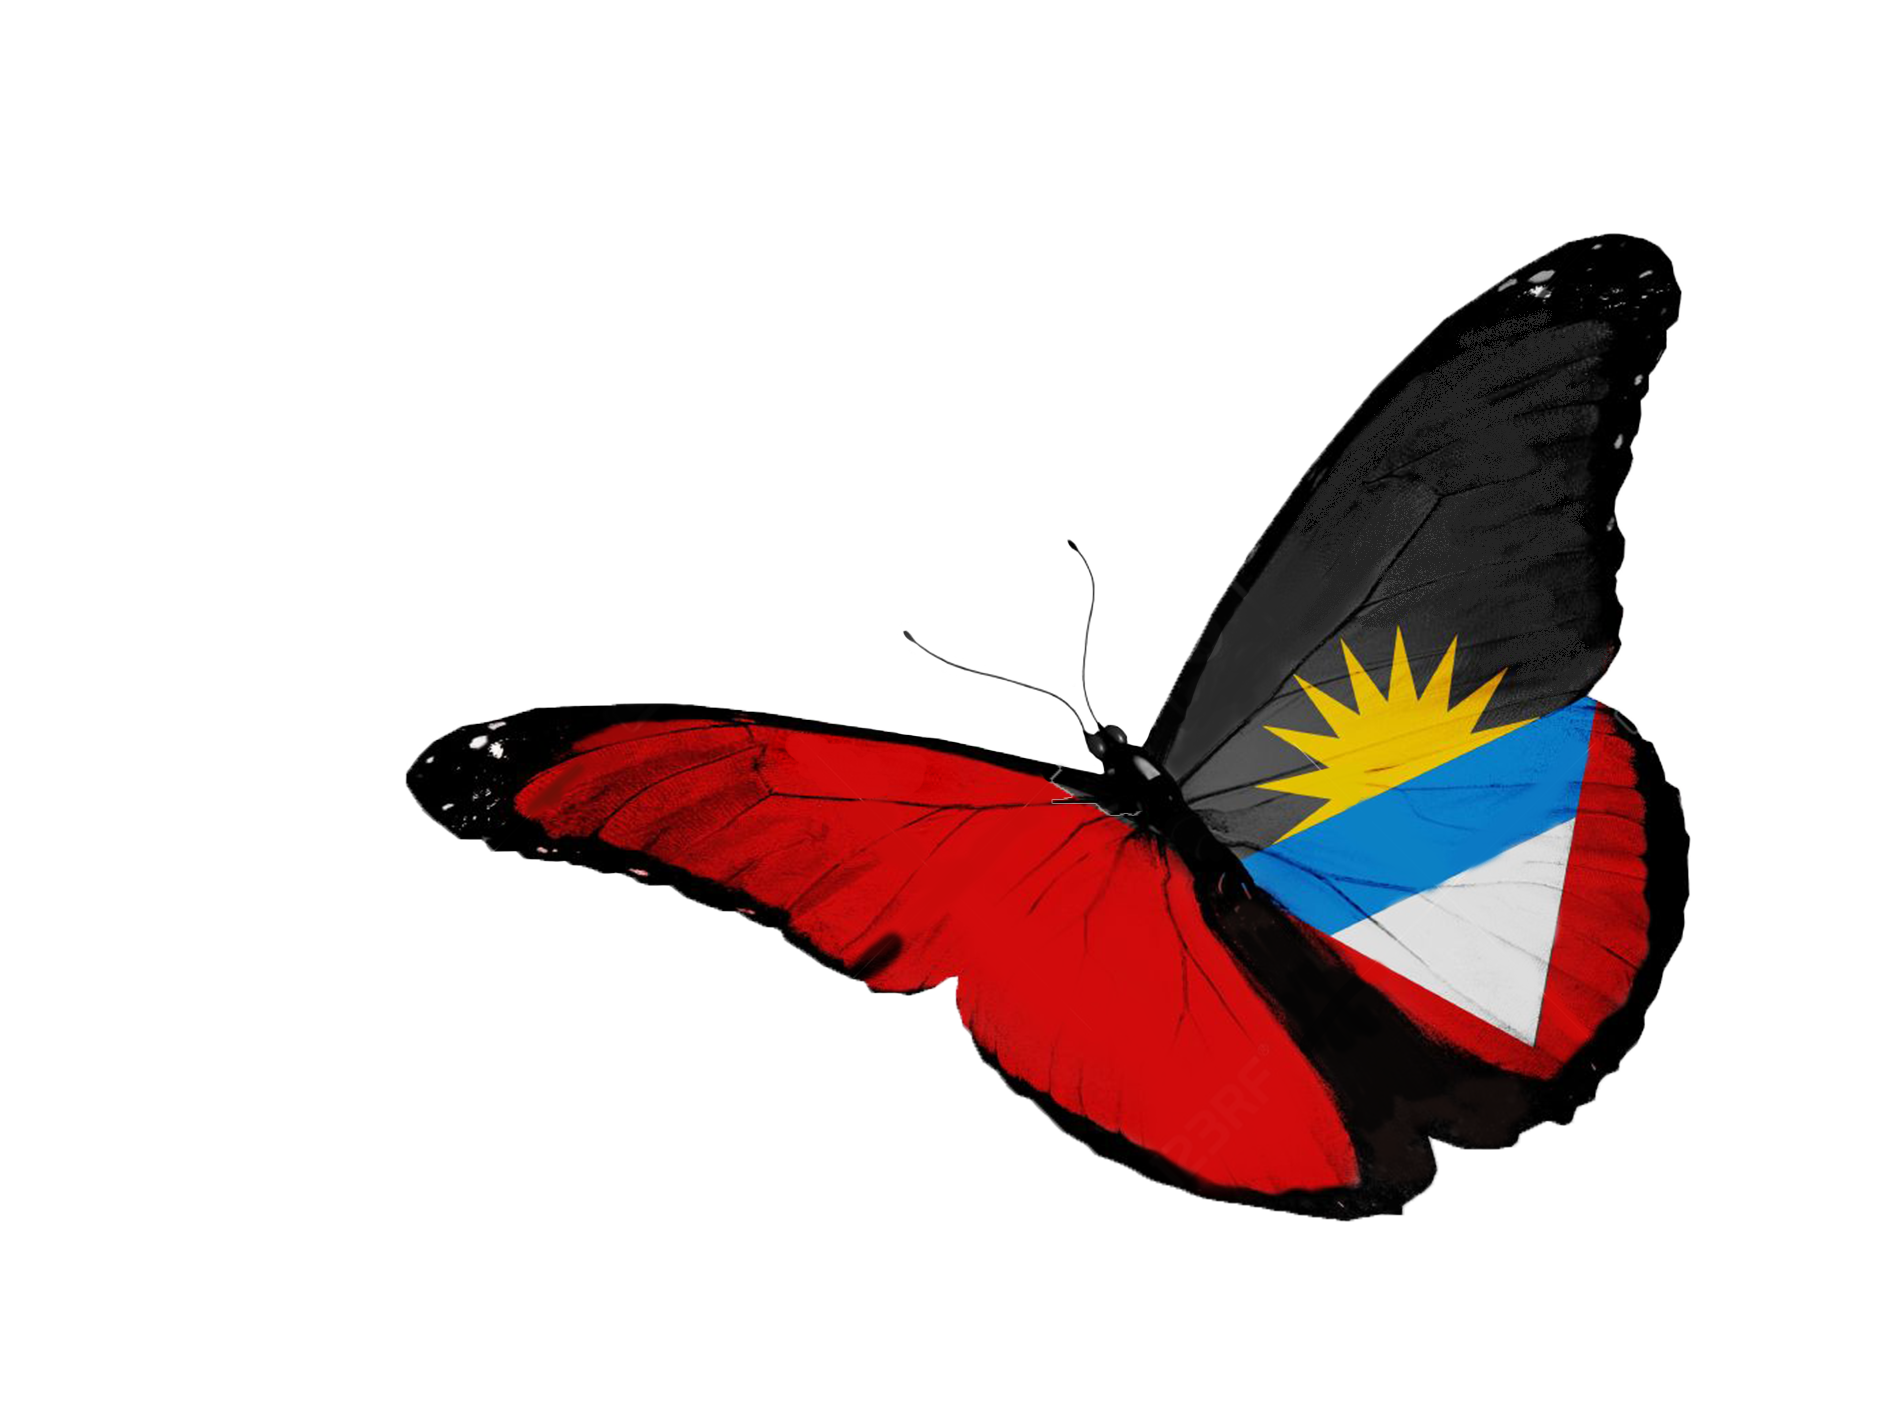 antigua-and-barbuda-flag-butterfly-flying-isolated-on-white-background.png